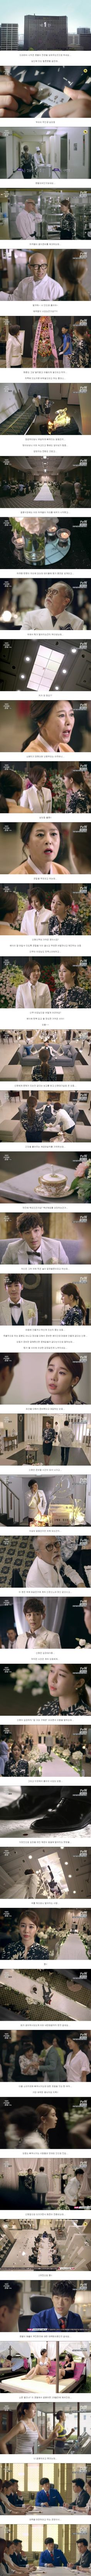 My Secret Hotel (마이 시크릿 호텔) Korean - Drama - Episode 1 - Picture My Secret Hotel, Drama Quotes, Korean Drama, Kdrama, Asian, Pictures, Photos, Theatre Quotes, Photo Illustration